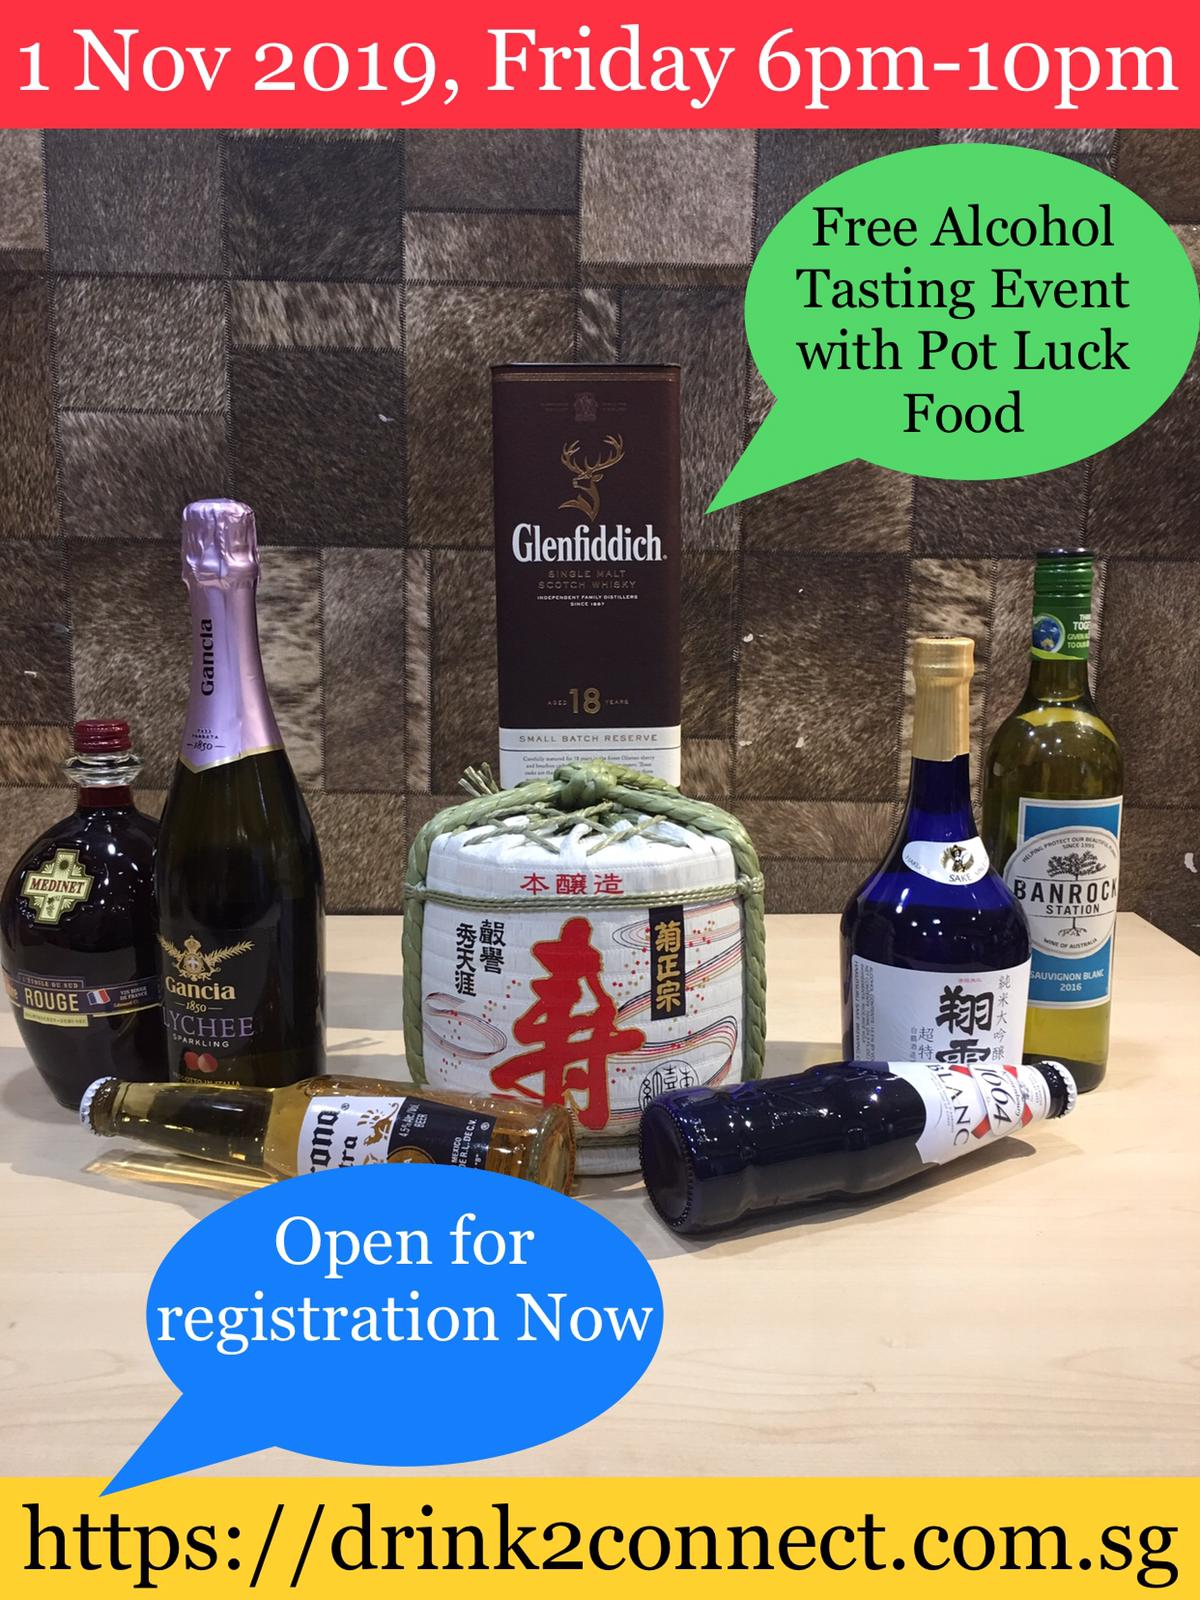 1 Nov 2019, Friday 6pm-10pm, Free Alcohol Tasting Event